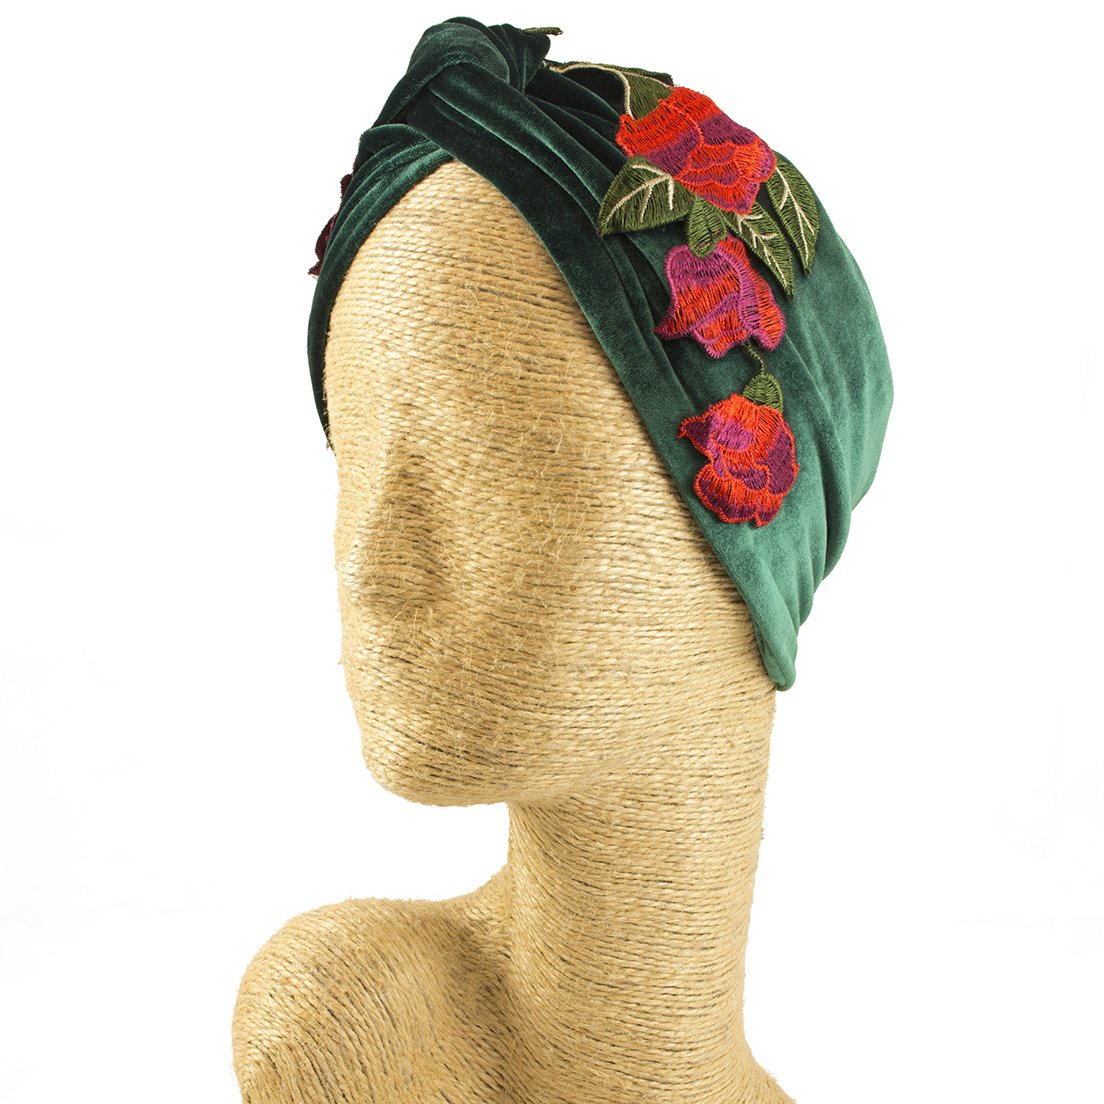 Fascinator, Velvet Headbands, Millinery, Worldwide Free Shipment, Delivery in 2 Days, Customized Tailoring, Designer Fashion, Head wrap, Bohemian Accessories, Green, Jewelled, Red, Boho Chic